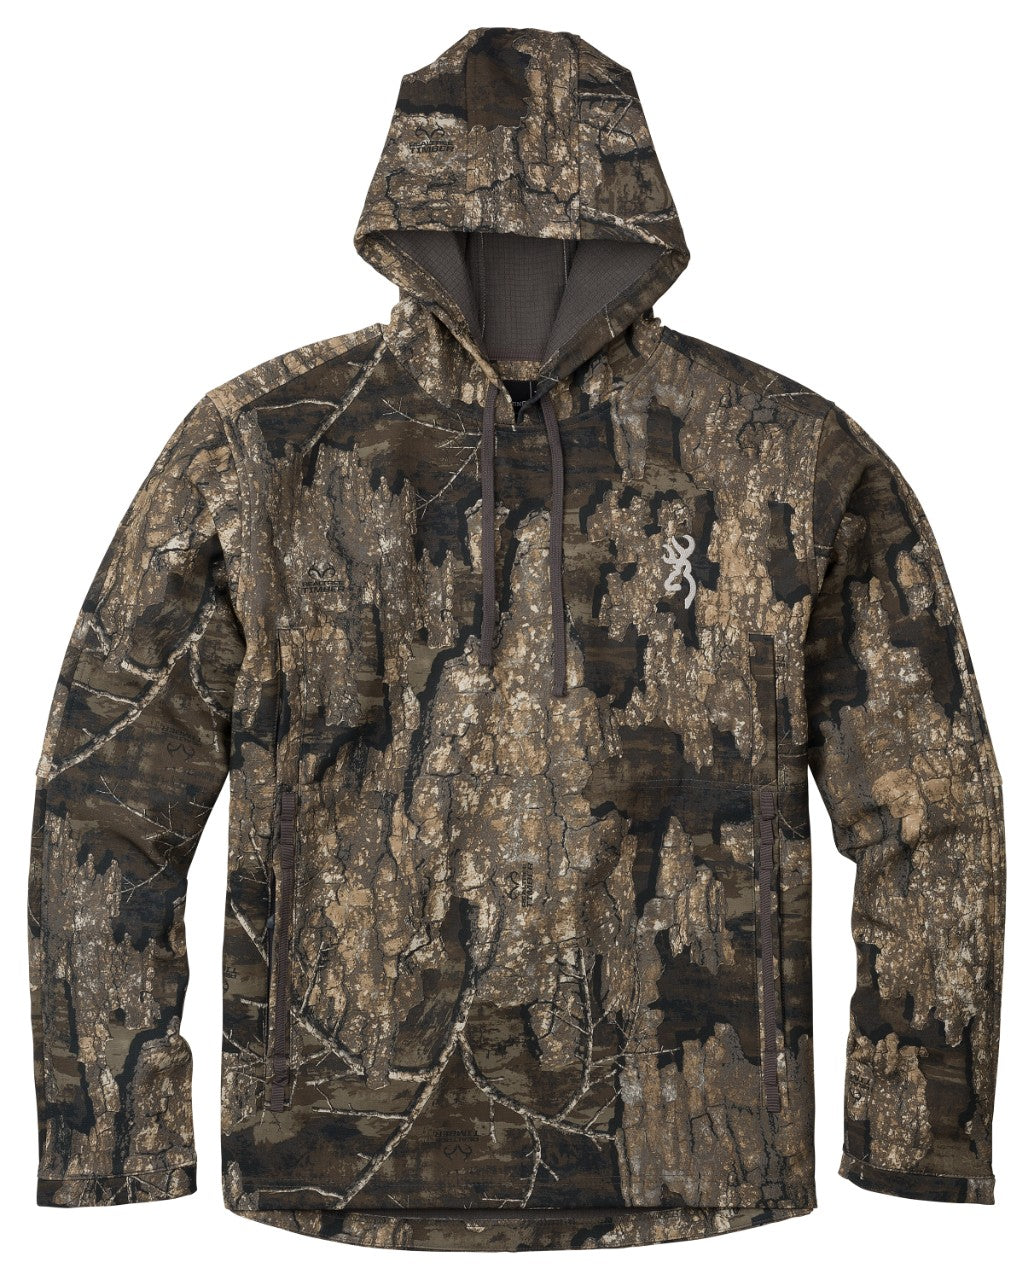 HOOD,WW,SMOOTHBORE,RTT,2XL